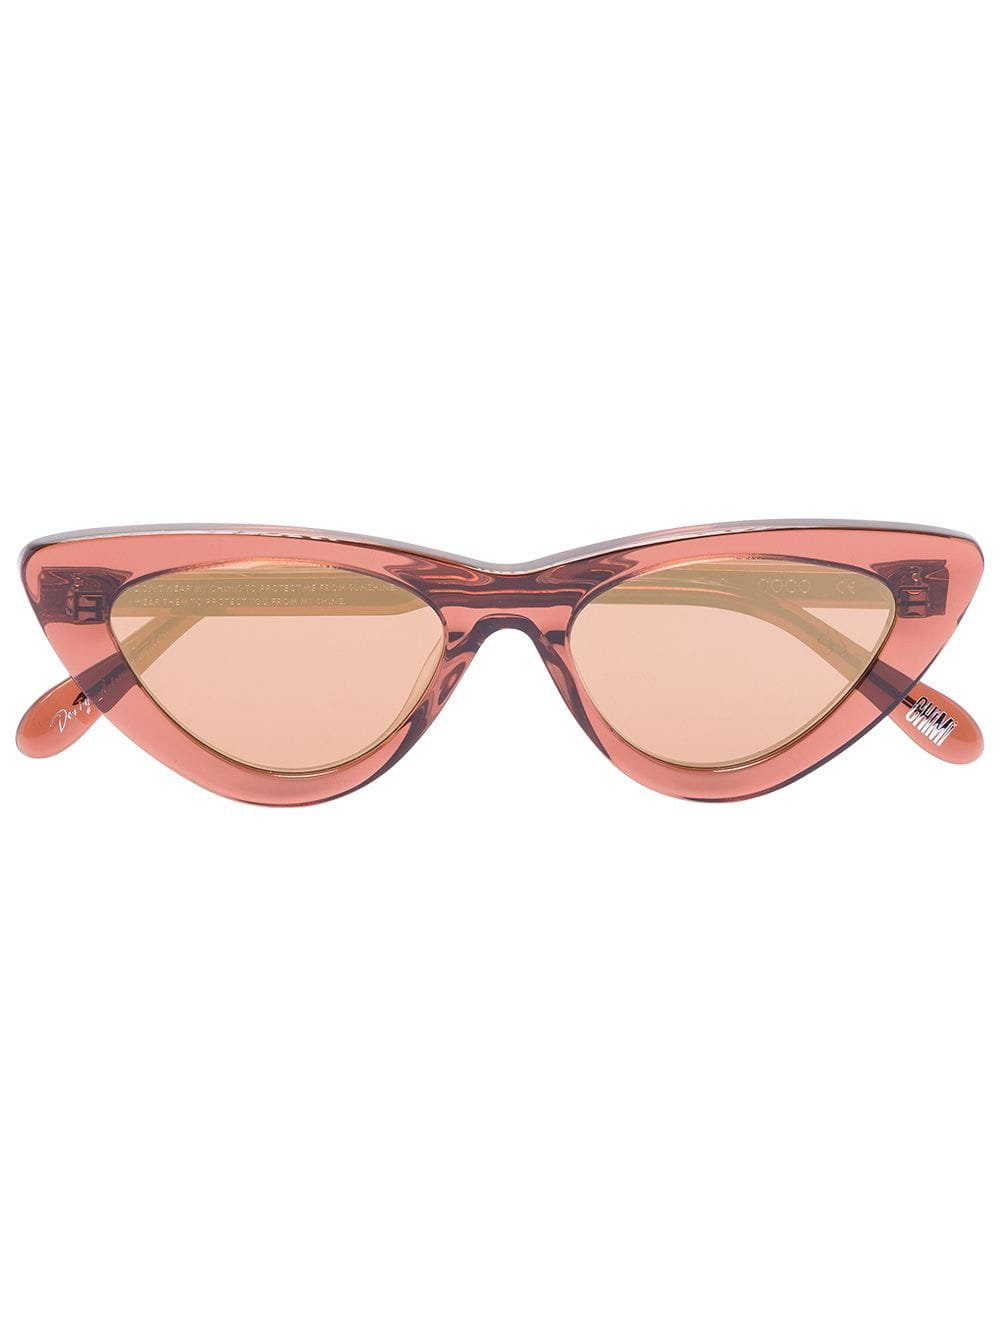 Chimi Coco Cat Eye Sunglasses | Farfetch.com